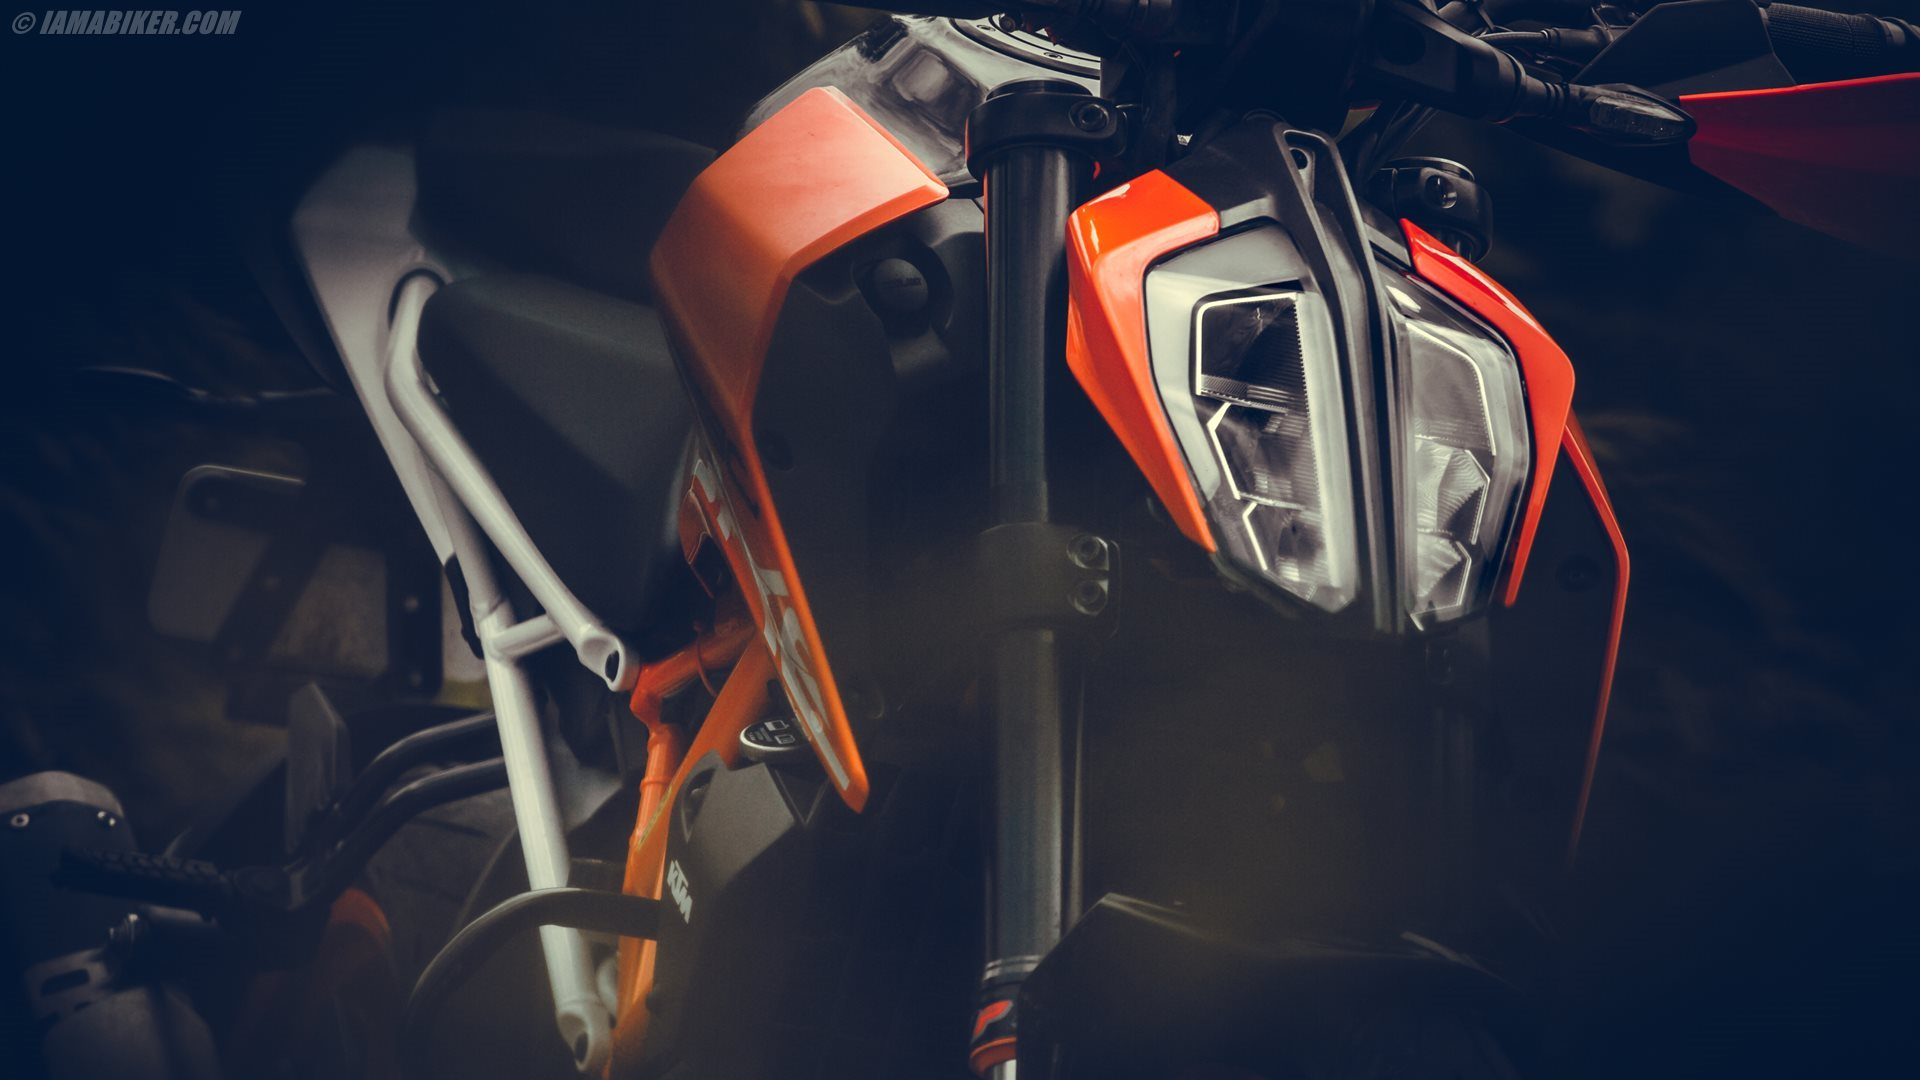 2017 Ktm Duke 390 Hd Wallpapers Iamabiker Everything Motorcycle